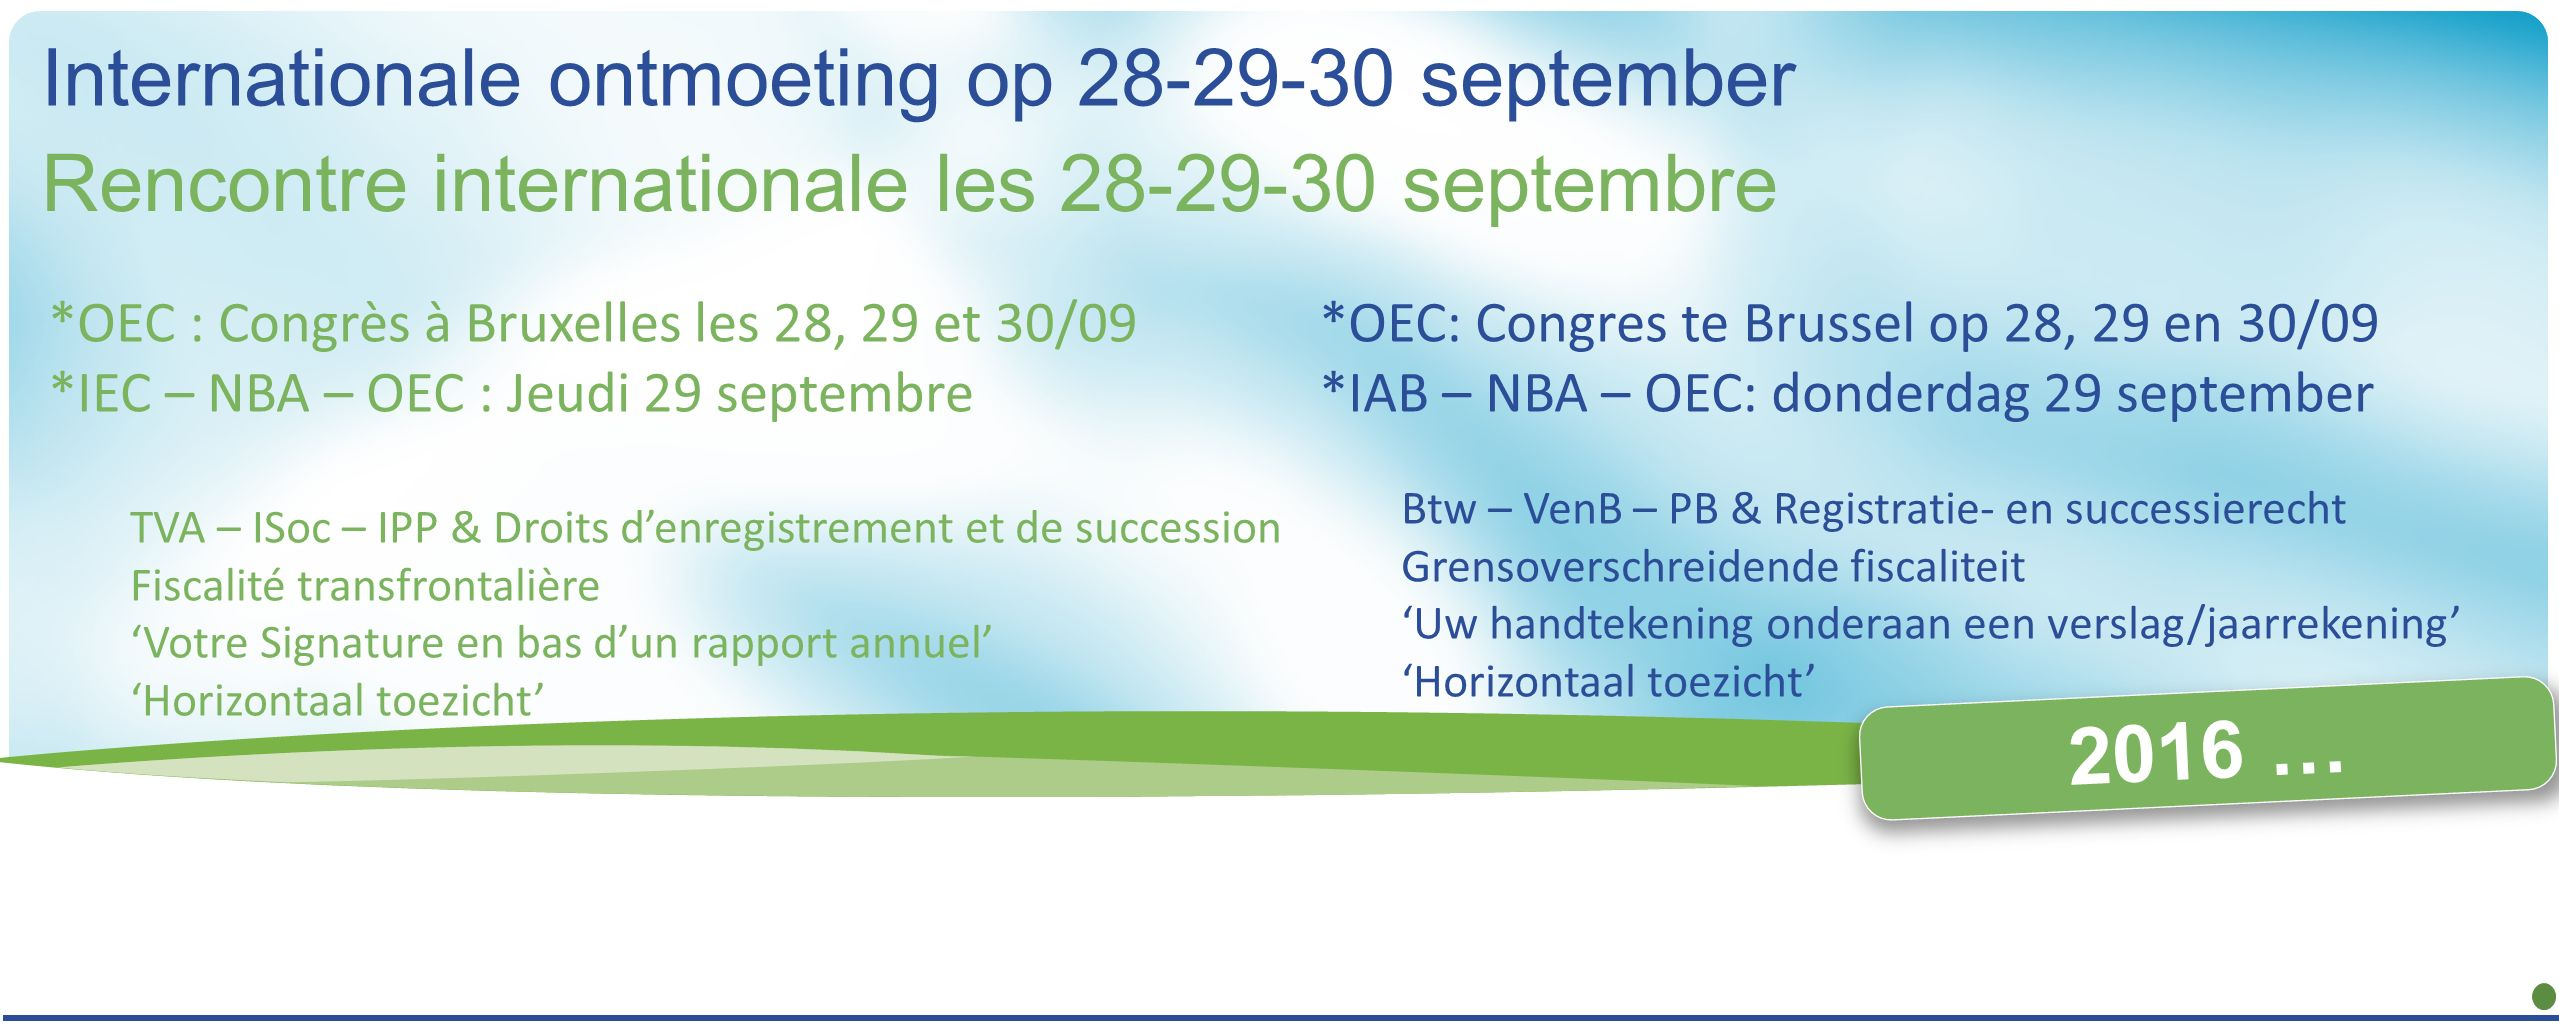 ALGEMENE VERGADERING ASSEMBLÉE GÉNÉRALE 2016 Rencontre internationale les 28-29-30 septembre Internationale ontmoeting op 28-29-30 september *OEC : Co